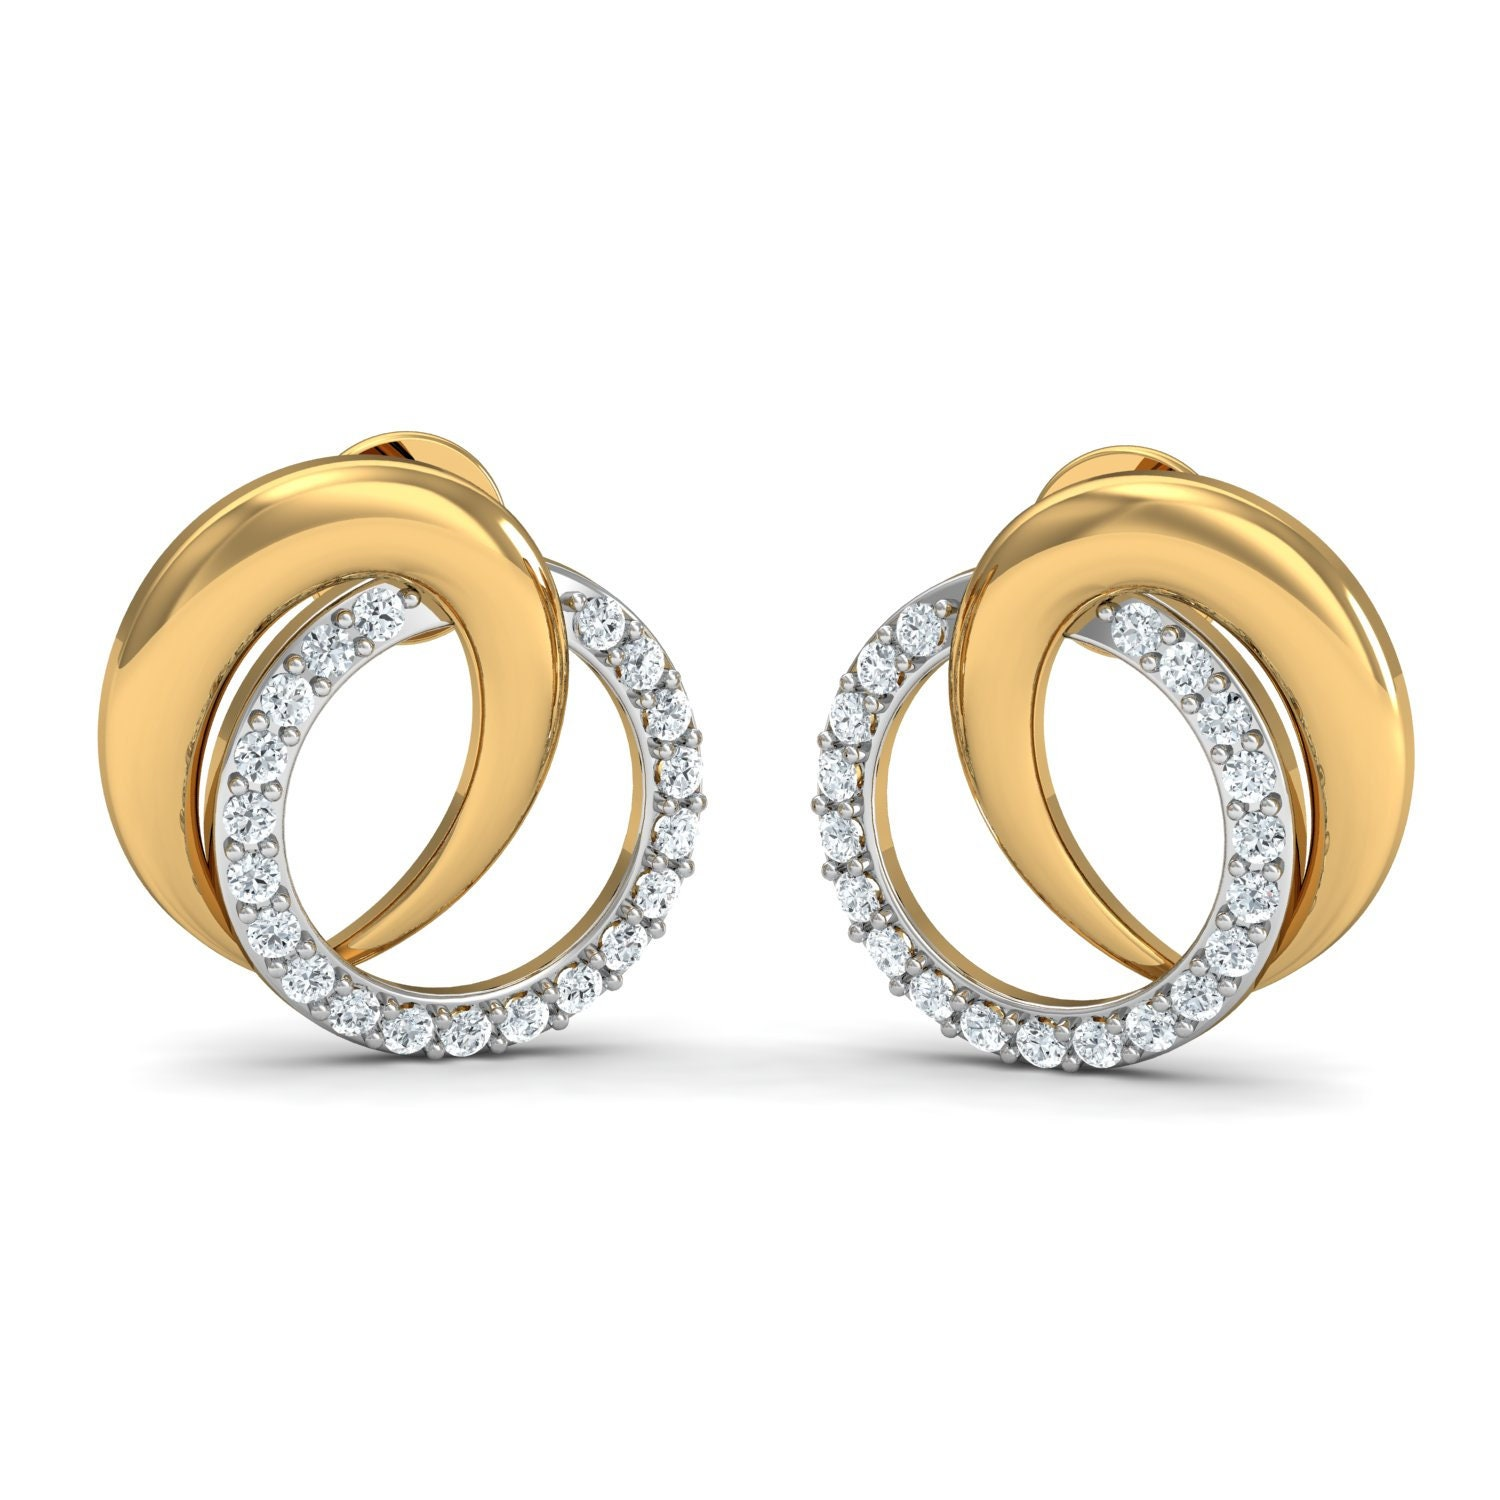 3c769d146 Attract The Person You Love 0.30ct Swarovski Zirconia Stud Post Gold  Earrings fits Women and Girls